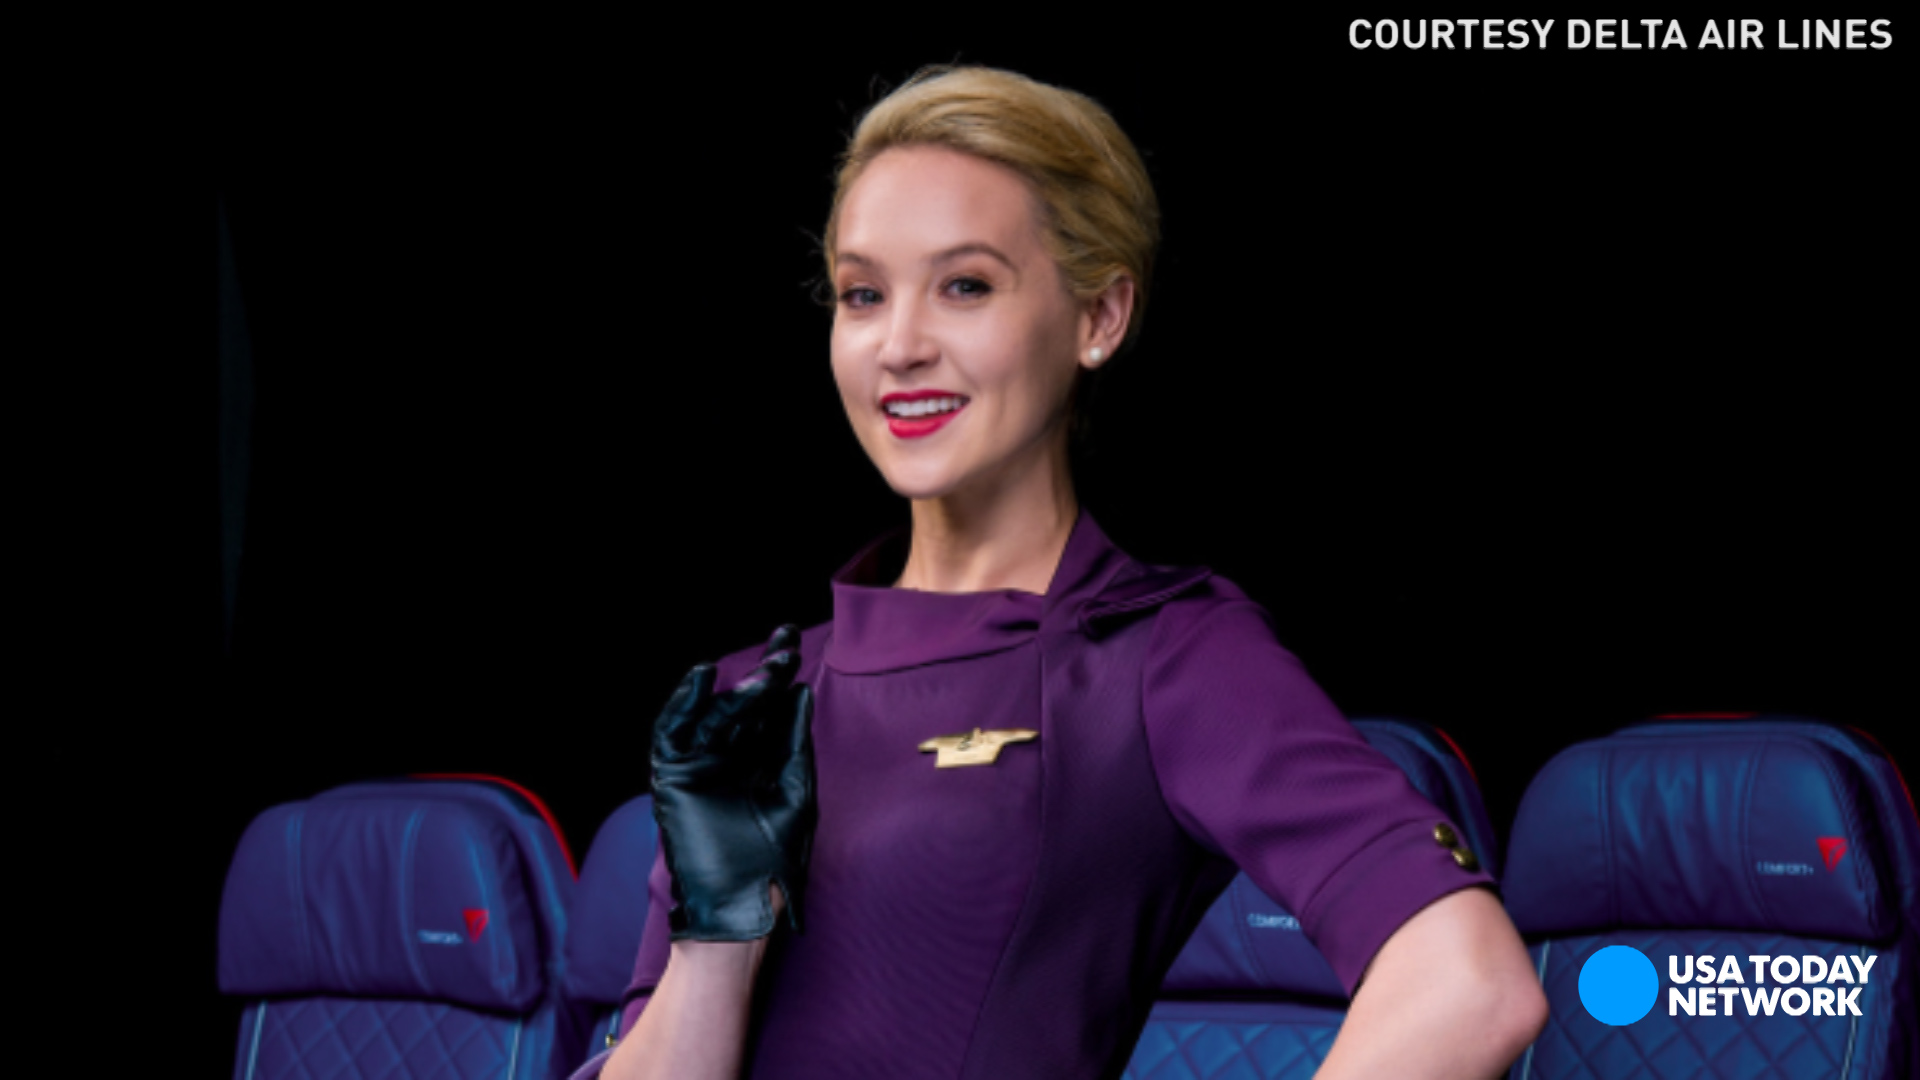 Delta flight attendants claim uniforms causing headaches and rashes in lawsuit